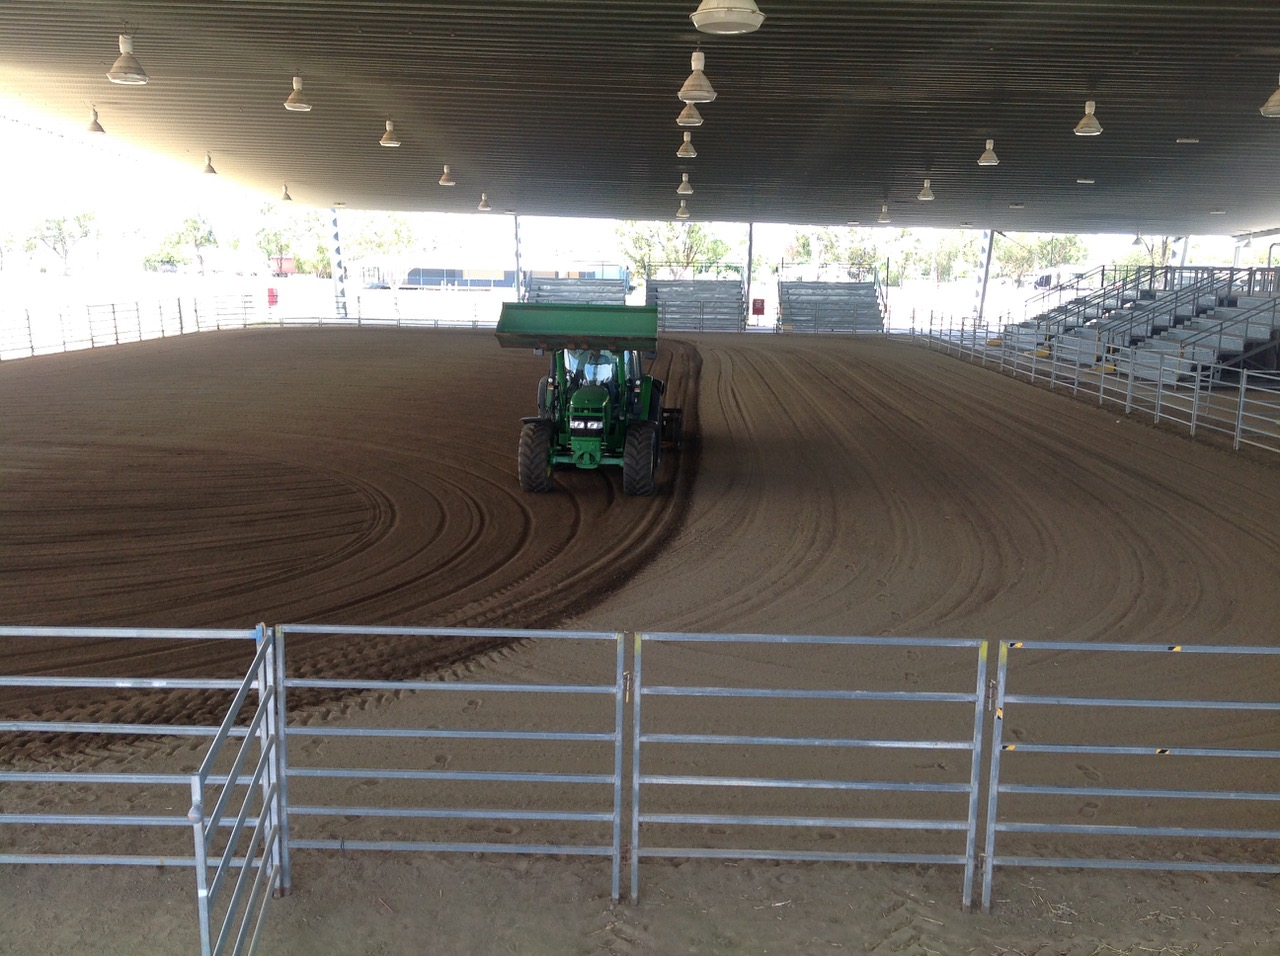 Dustless equestrian arena dust control for shows and events